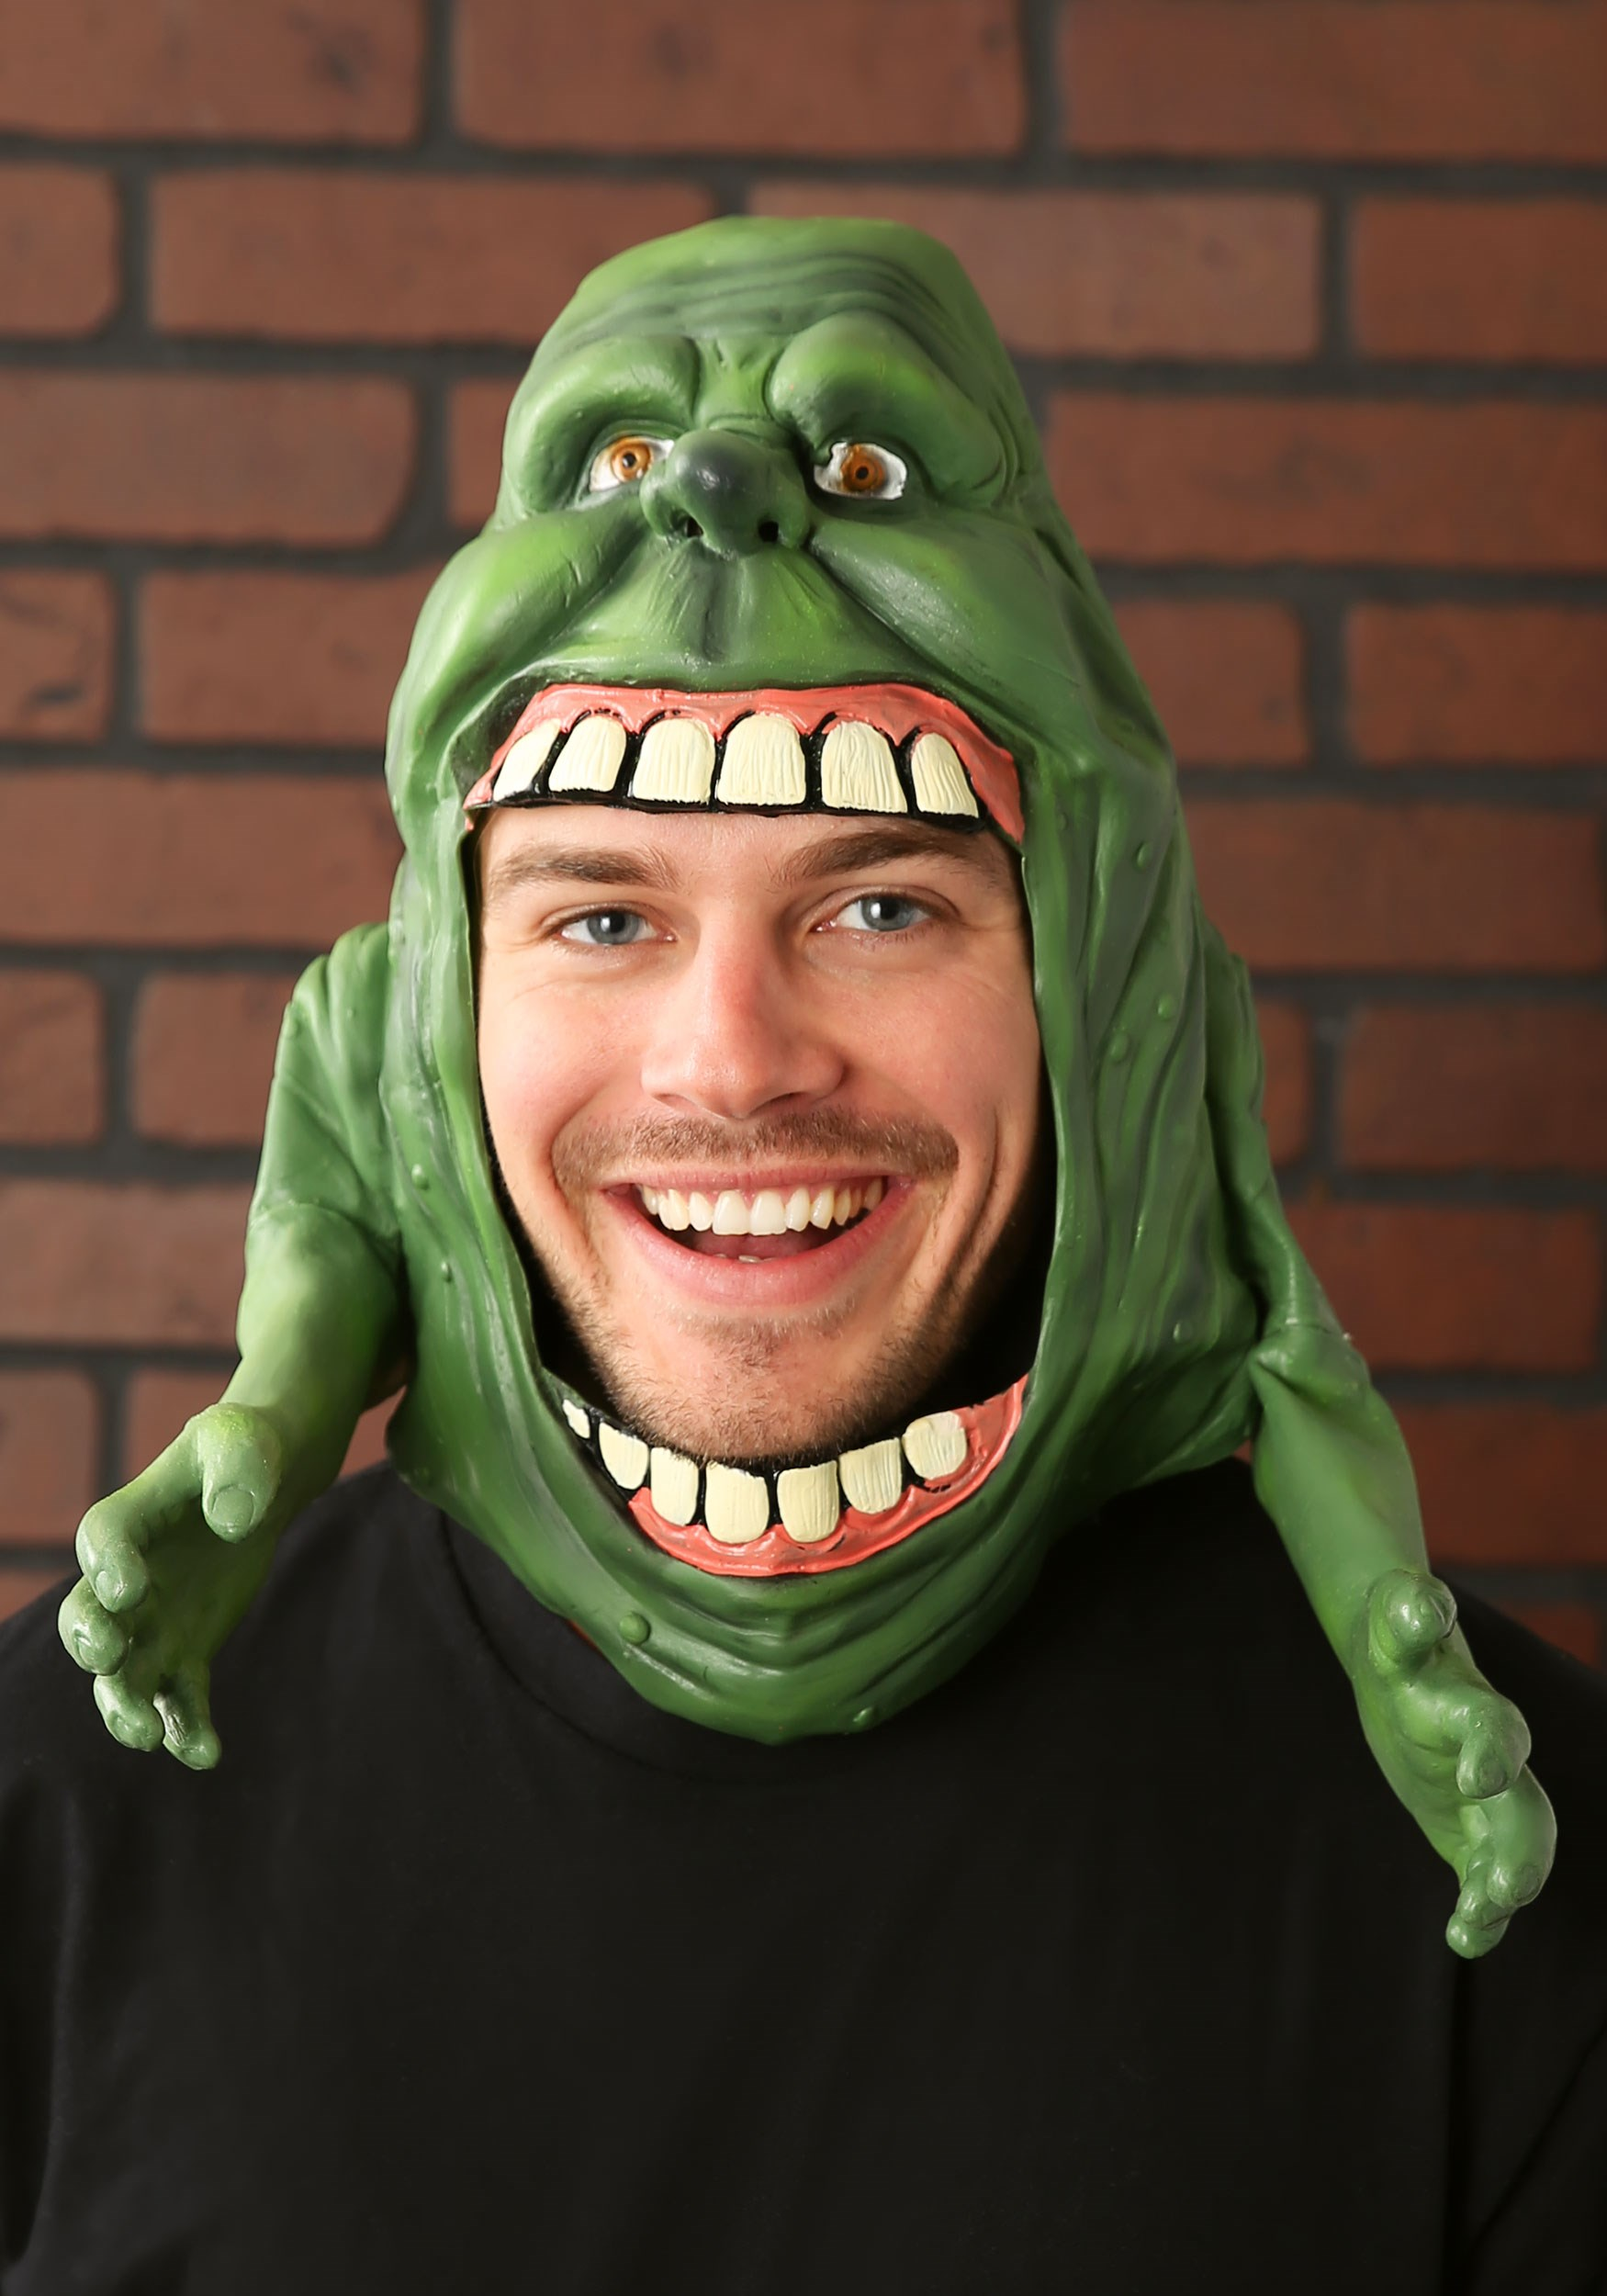 Ghostbusters Inflatable Slimer Costume for Adults - Newegg.com